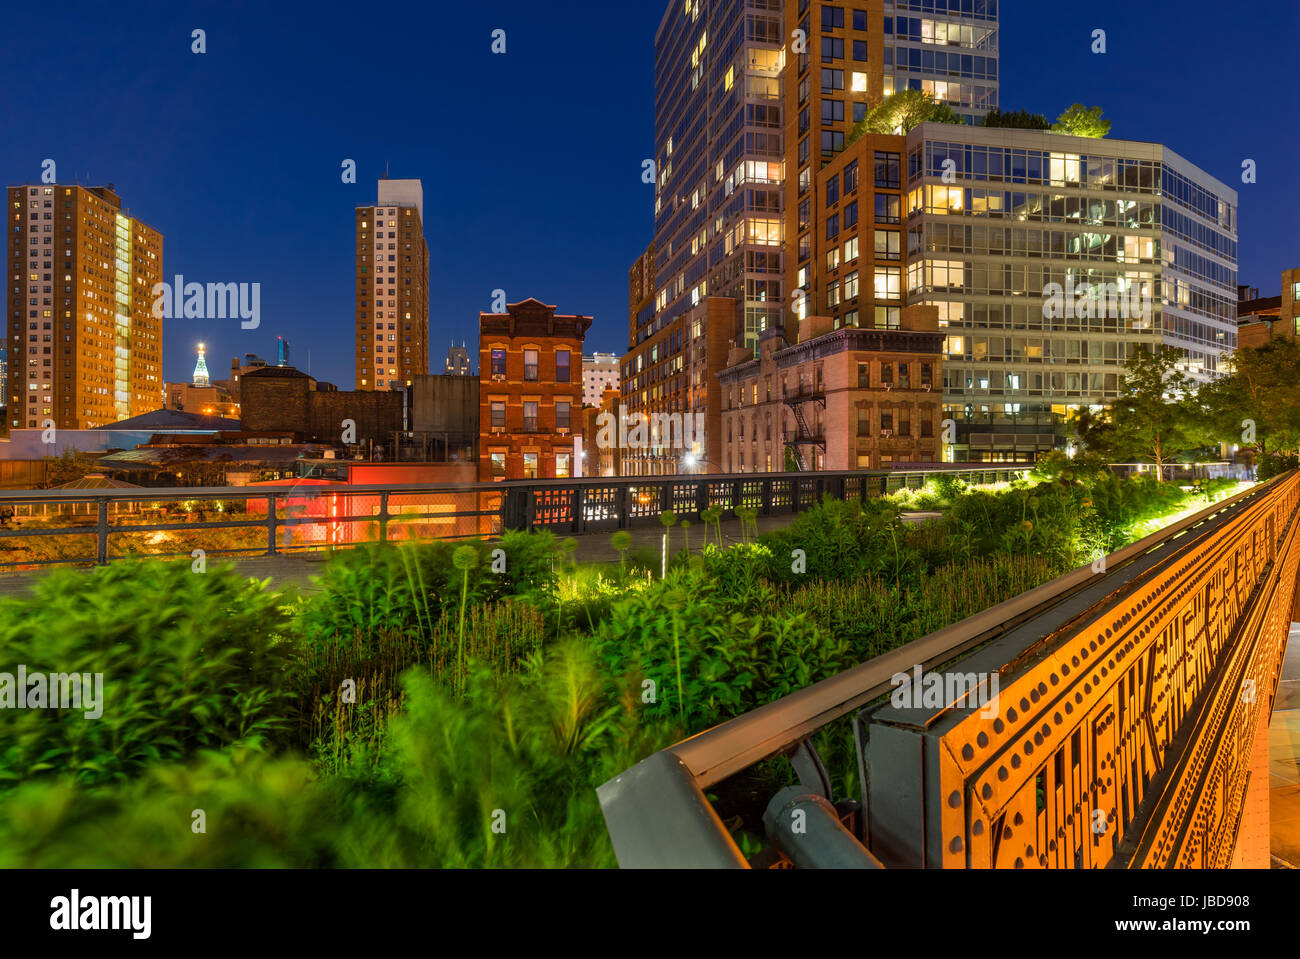 The High Line on a summer evening in the heart of Chelsea (here at the intersection of 10th Avenue and 17th Street). - Stock Image